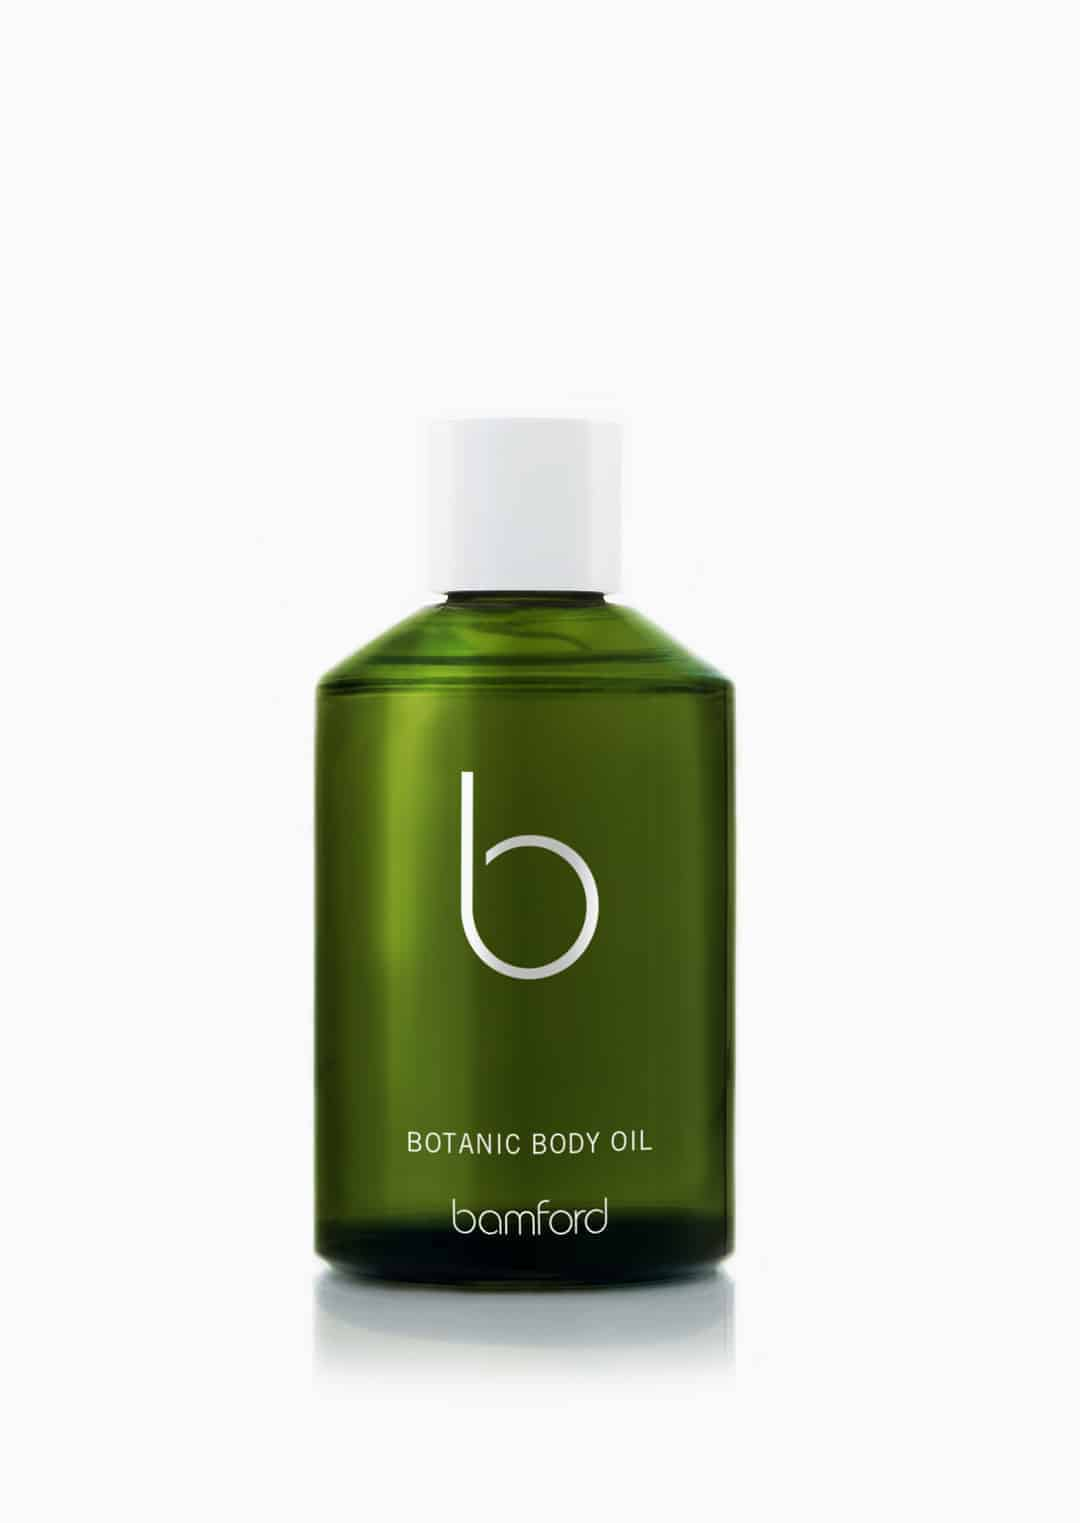 Bamford Botanic Body Oil